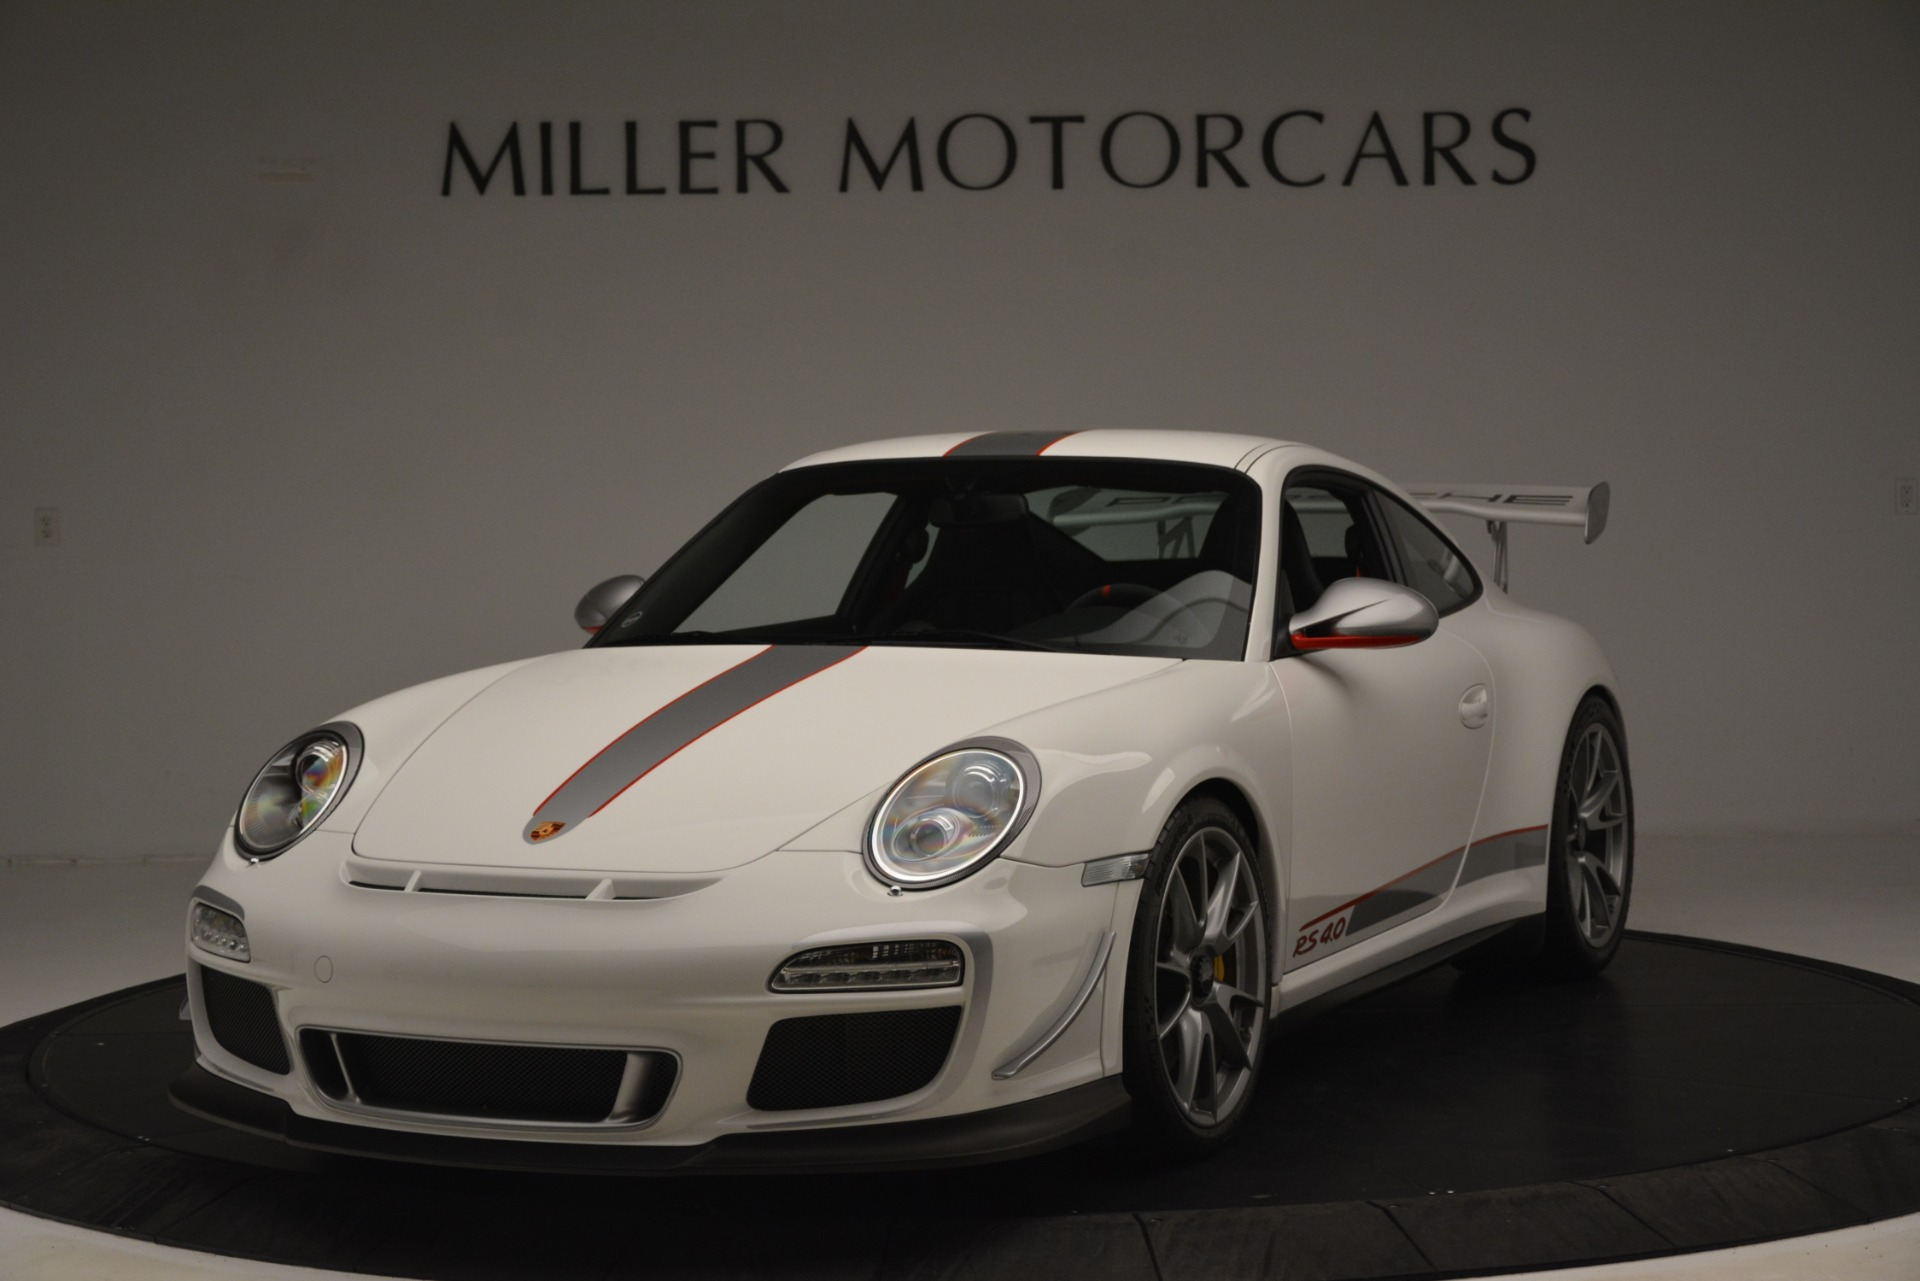 Used 2011 Porsche 911 GT3 RS 4.0 for sale Sold at Rolls-Royce Motor Cars Greenwich in Greenwich CT 06830 1